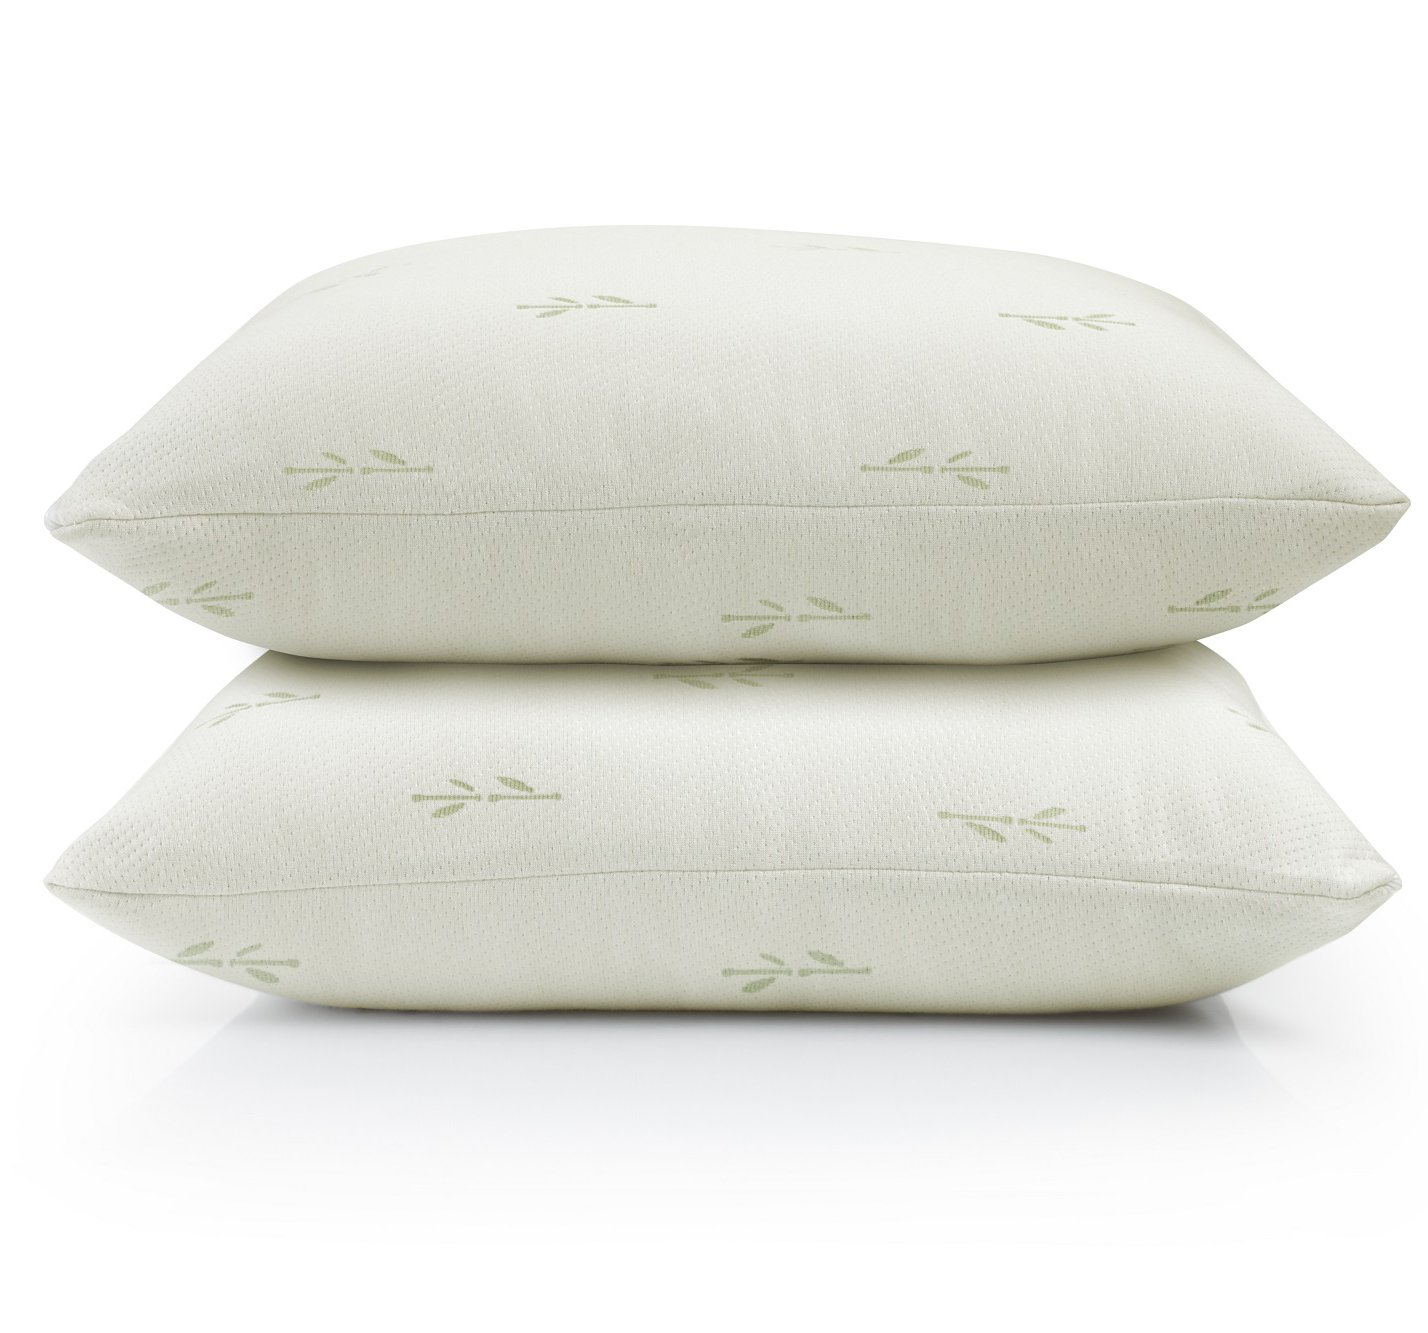 Home Fashion Designs 4-Pack Ultra-Luxury Eco-Friendly Bamboo Zippered Pillow Protectors. Naturally Allergy, Dust Mite & Bed Bug Resistant. Anti-Microbial & Sustainable Pillow Covers. (Standard)